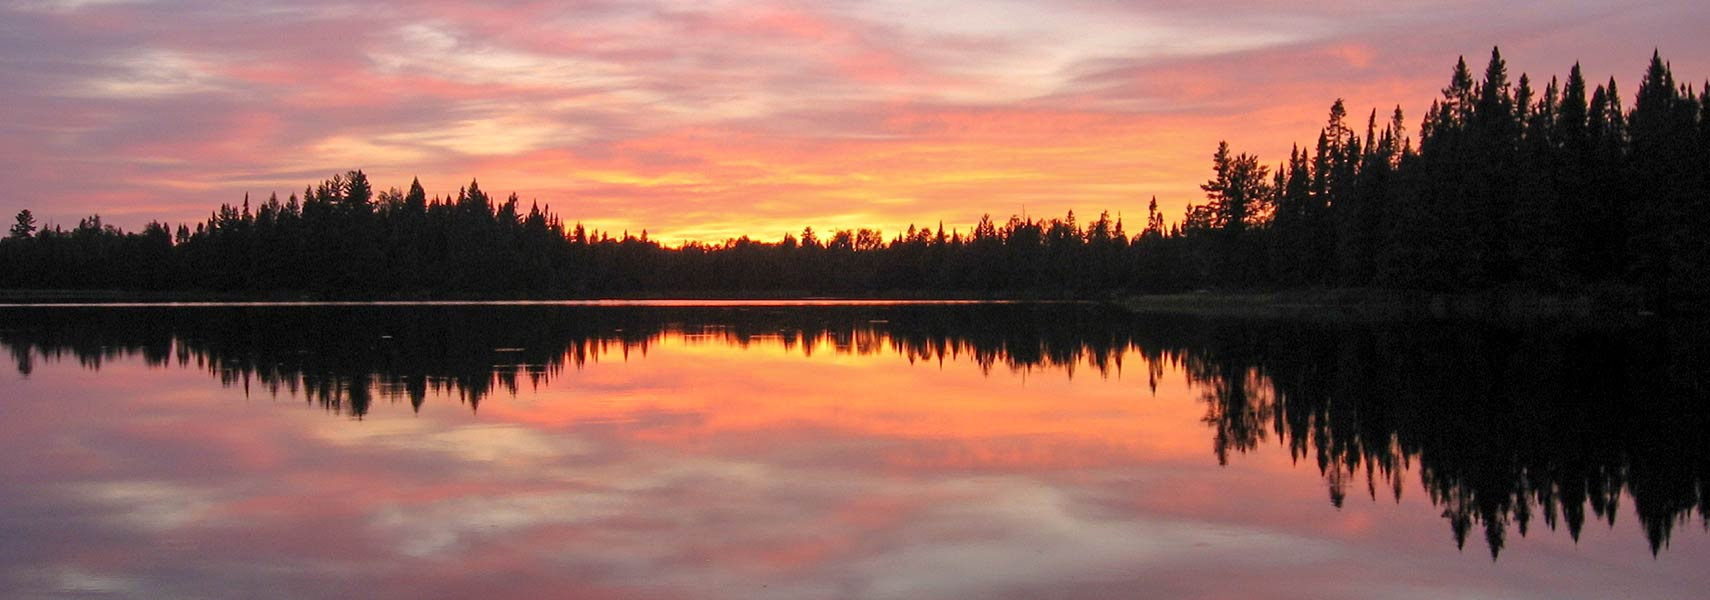 Lake Pose in Boundary Waters Canoe Area Wilderness